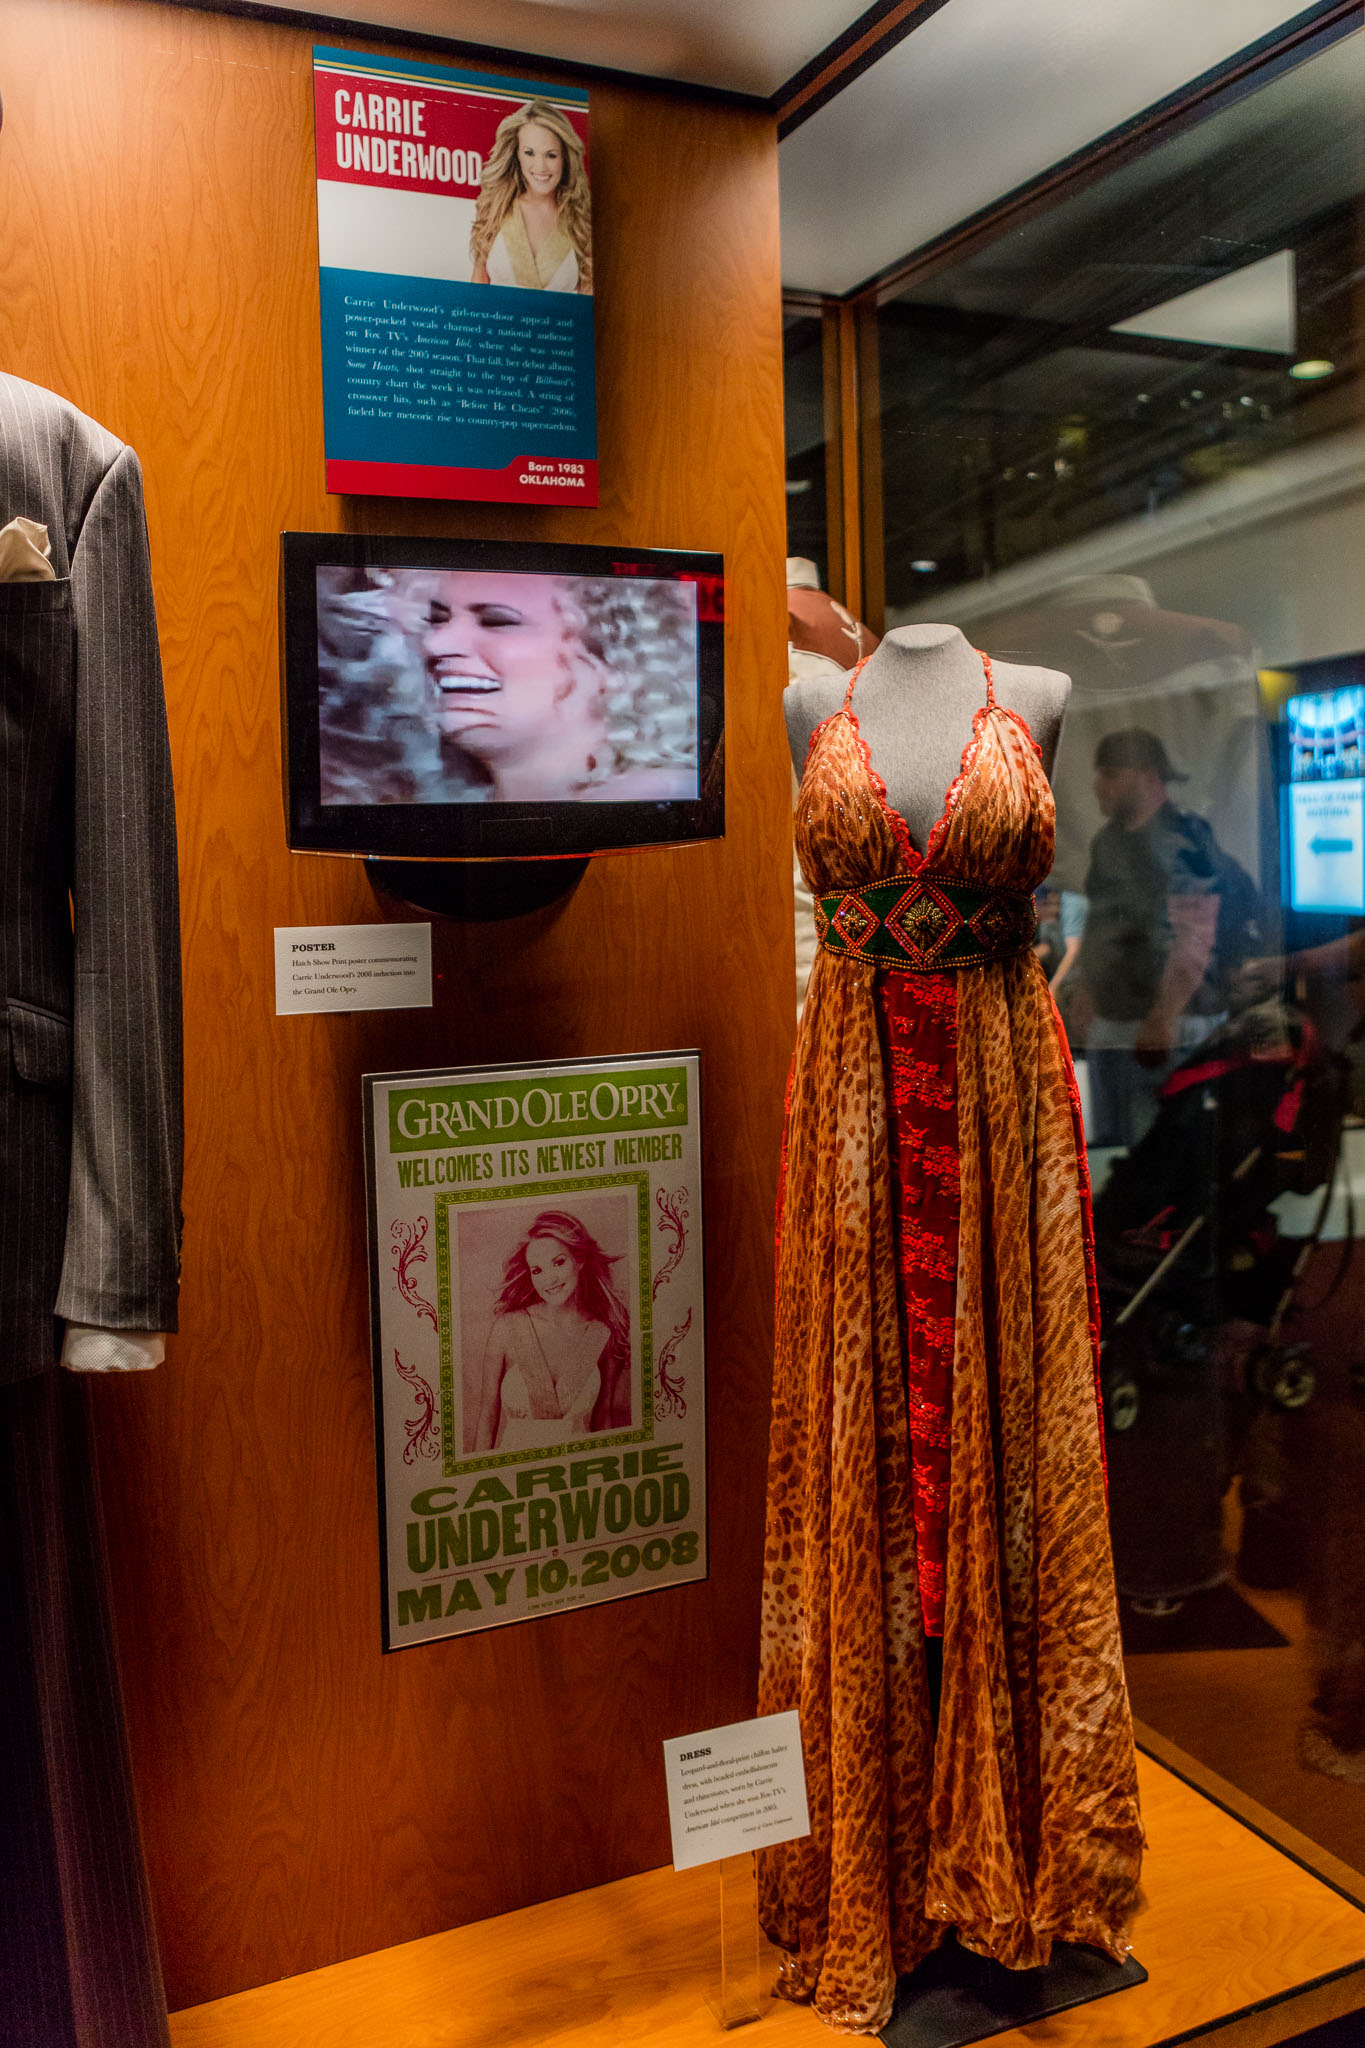 Wardrobe of American Idol 2005 WinnerCarrie Underwood at CMHOF